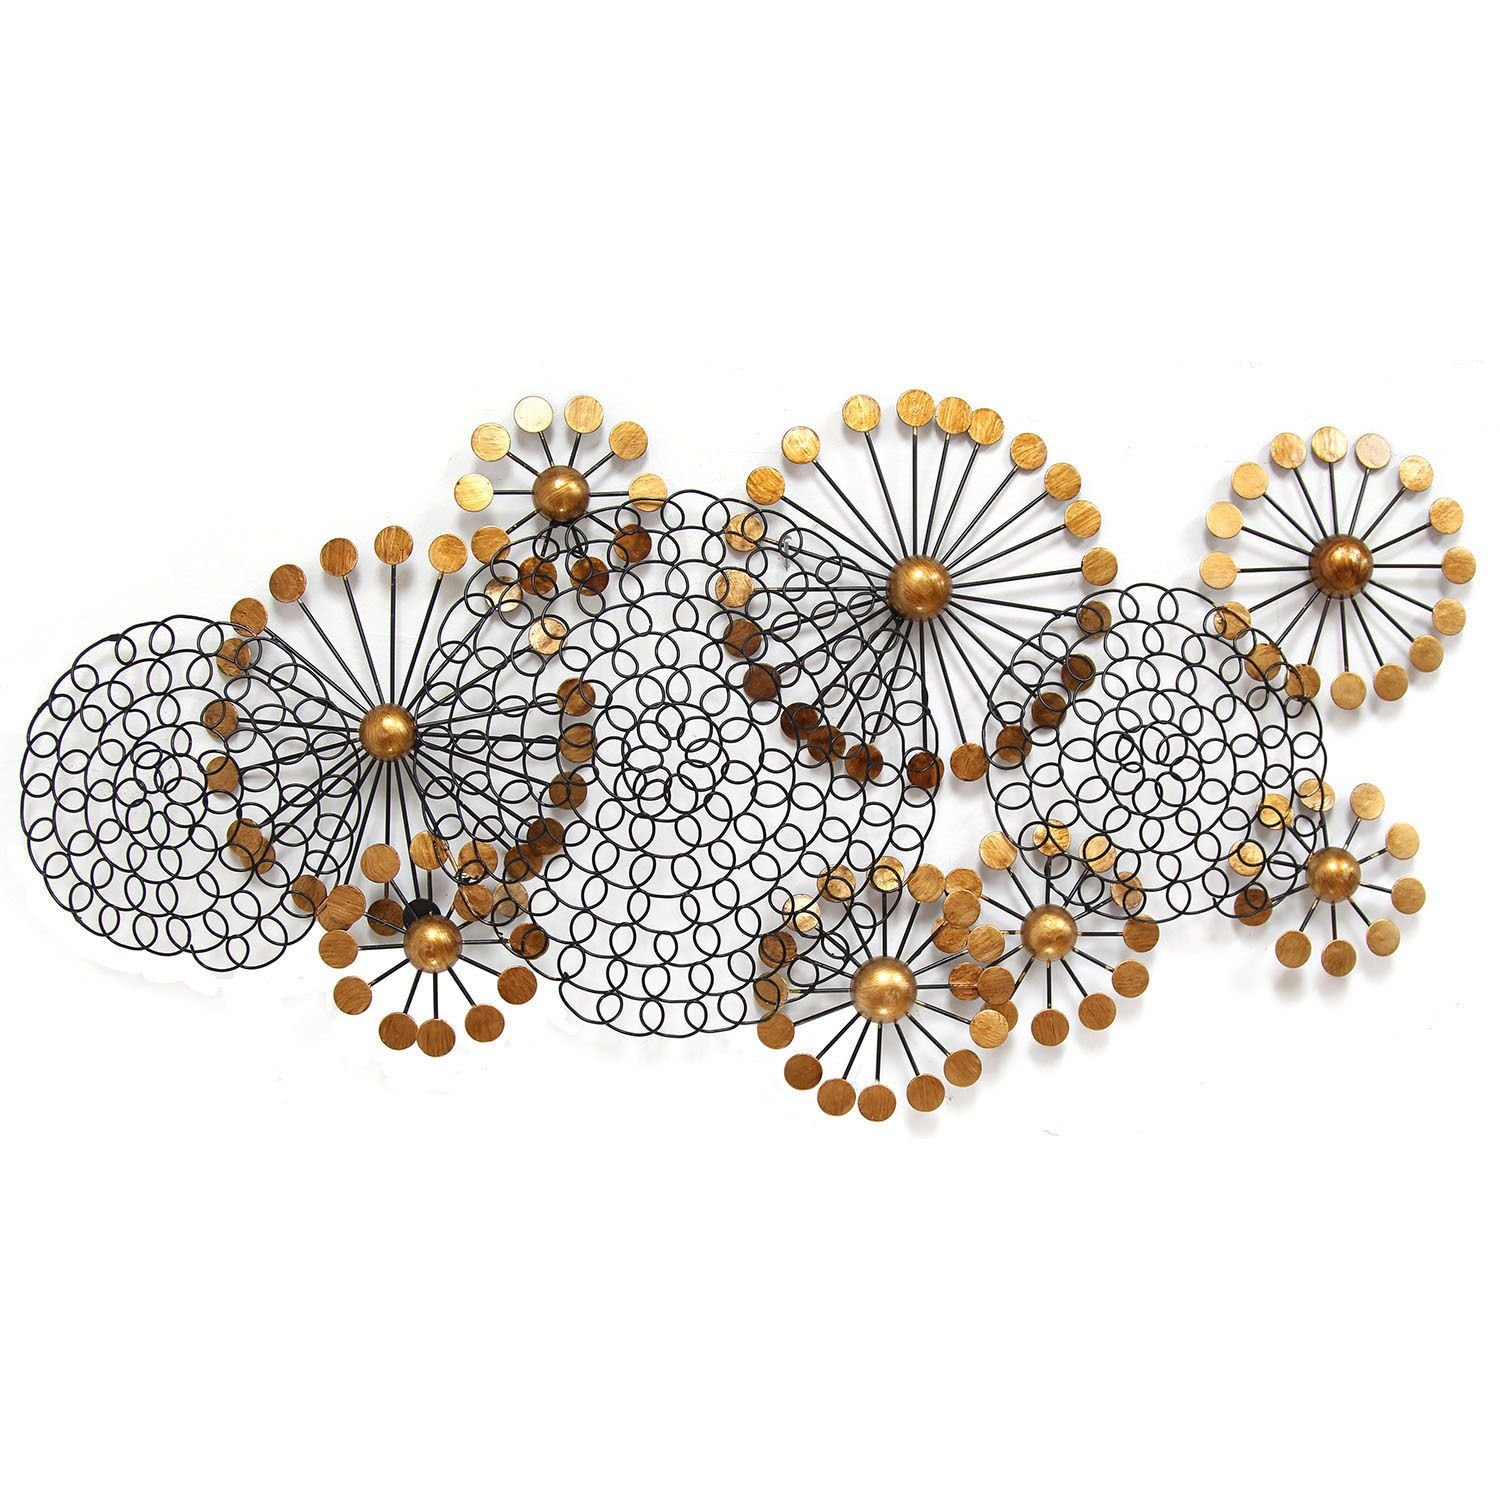 Add dimension to your home with the Spiral Circles Wall Decor. Made from durable metal with shiny gold circle accents, this cluster of spiral pieces is simple yet striking. Display it in a contemporary-style home as a whimsical accent piece.